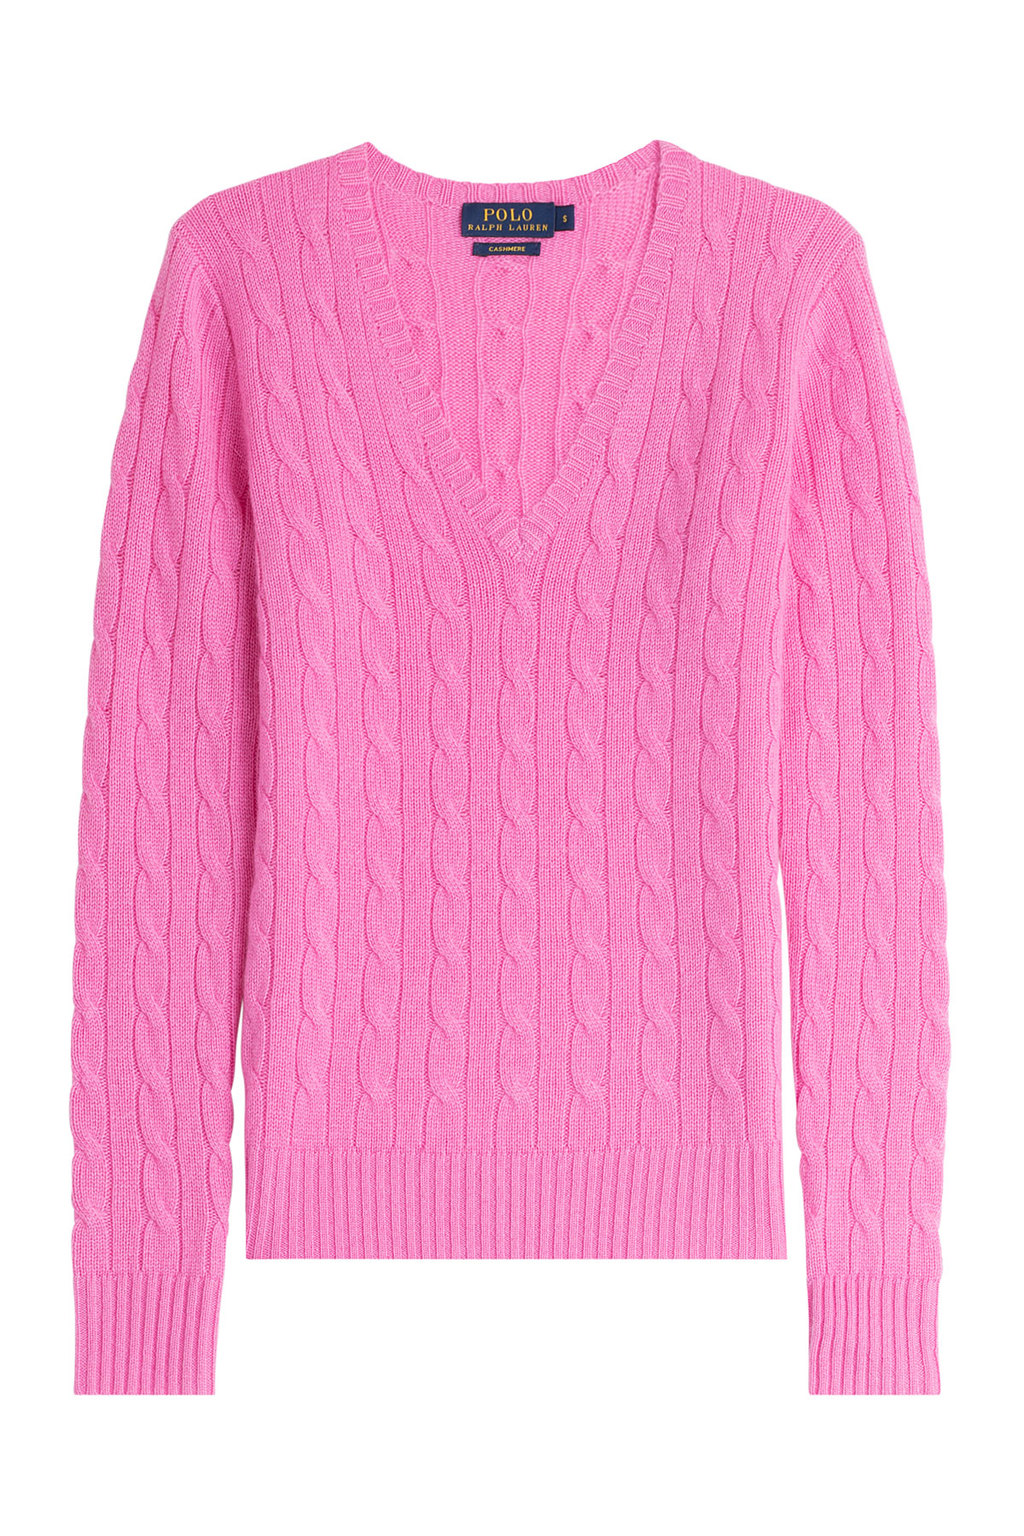 Cashmere Cable Knit Pullover - neckline: low v-neck; style: standard; pattern: cable knit; predominant colour: pink; occasions: casual; length: standard; fit: standard fit; fibres: cashmere - 100%; sleeve length: long sleeve; sleeve style: standard; texture group: knits/crochet; bust detail: bulky details at bust; pattern type: knitted - other; season: s/s 2015; wardrobe: highlight